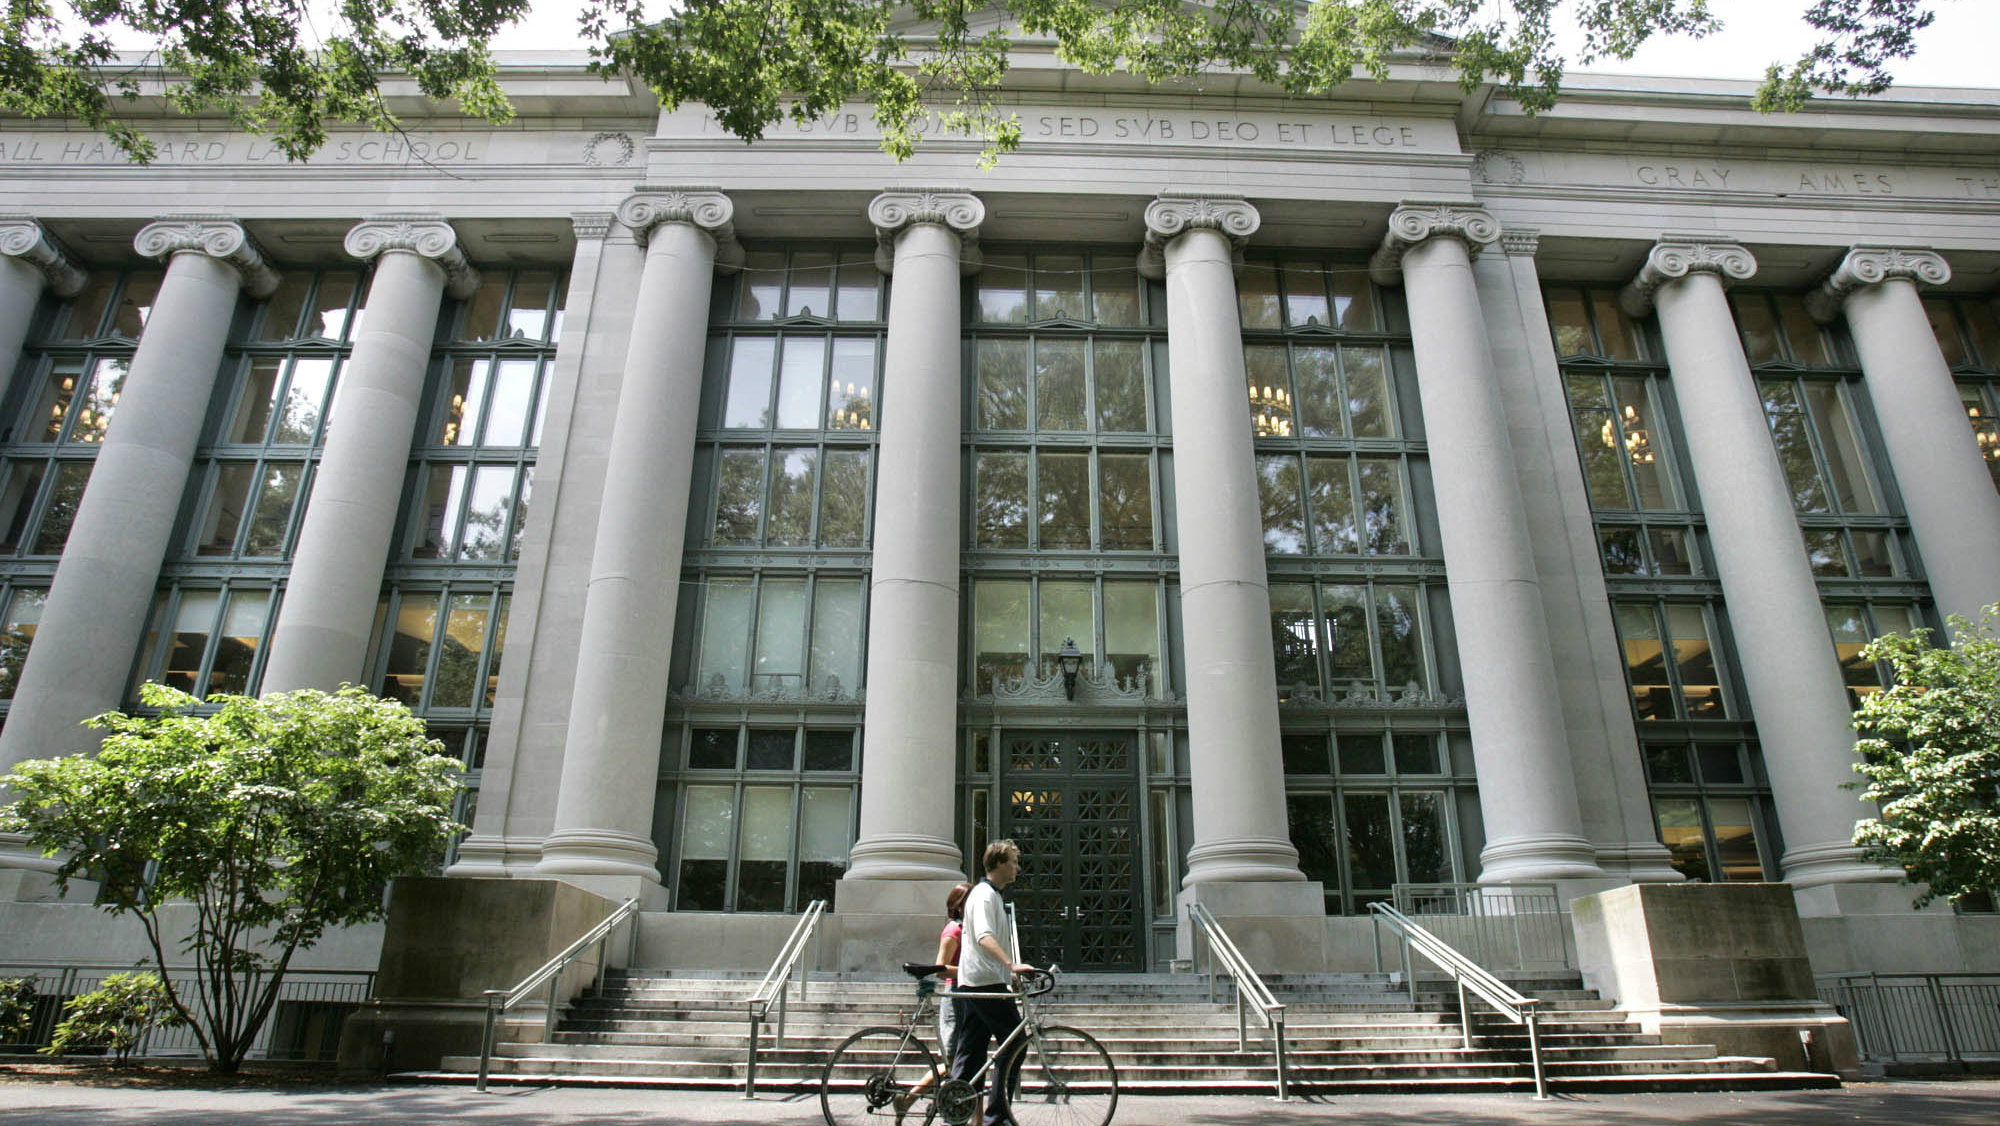 In this Aug. 1, 2005 file photo, a bicyclist walks by Langdell Hall, the Harvard Law Library, on the Harvard Law School campus at Harvard University in Cambridge, Mass. Some students at Harvard Law School want it to change its official seal because of its ties to an 18th-century slaveholder. The seal depicts three bundles of wheat, an image taken from the family crest of Isaac Royall Jr. It's meant to pay tribute to Royall, who left his estate to create the first law professorship at Harvard University but who was a slave trader and owned slaves at his Massachusetts home.